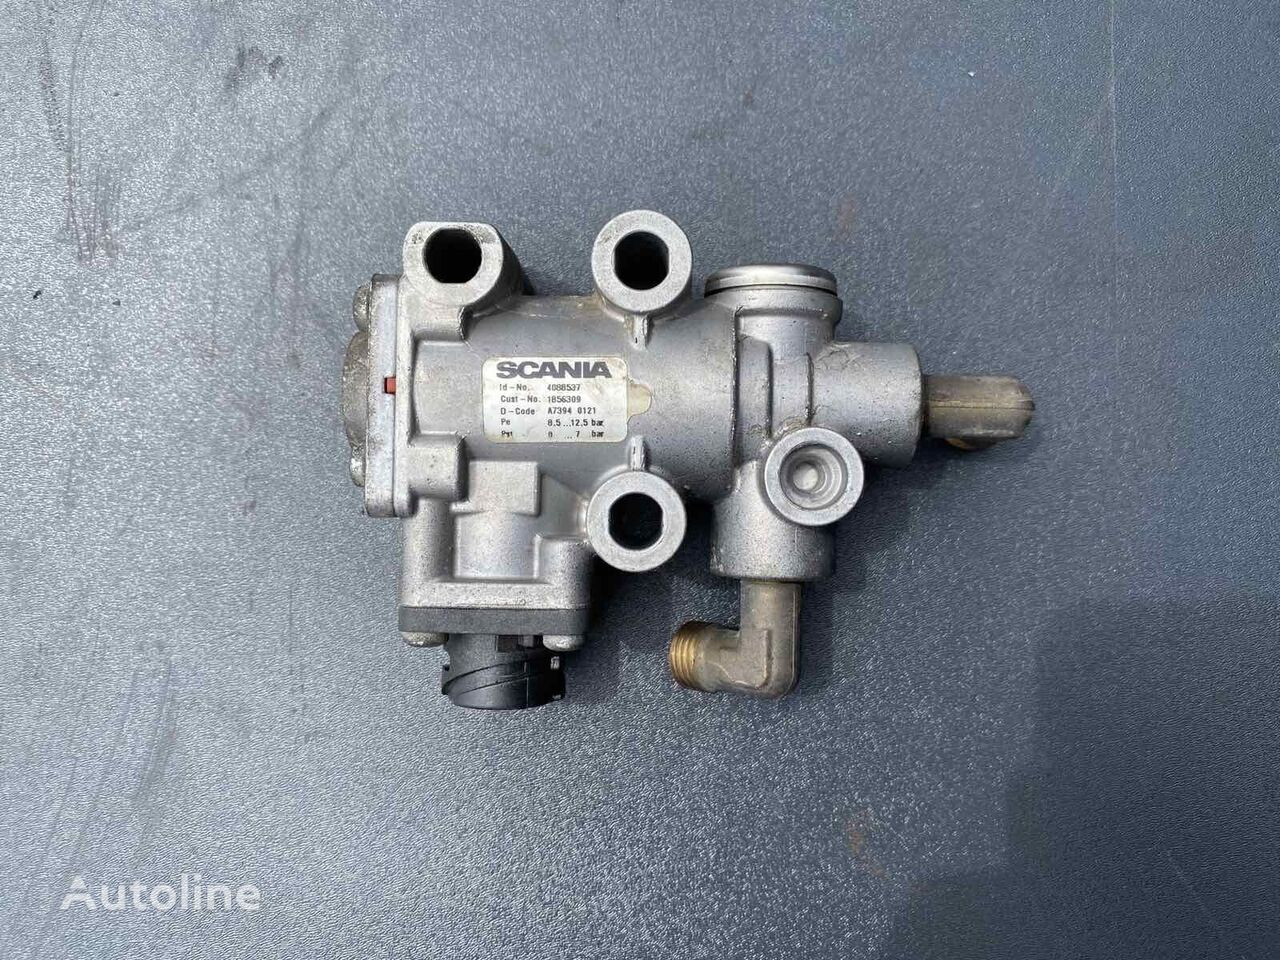 PROPORTIONAL VALVE (1856309) pneumatic valve for tractor unit